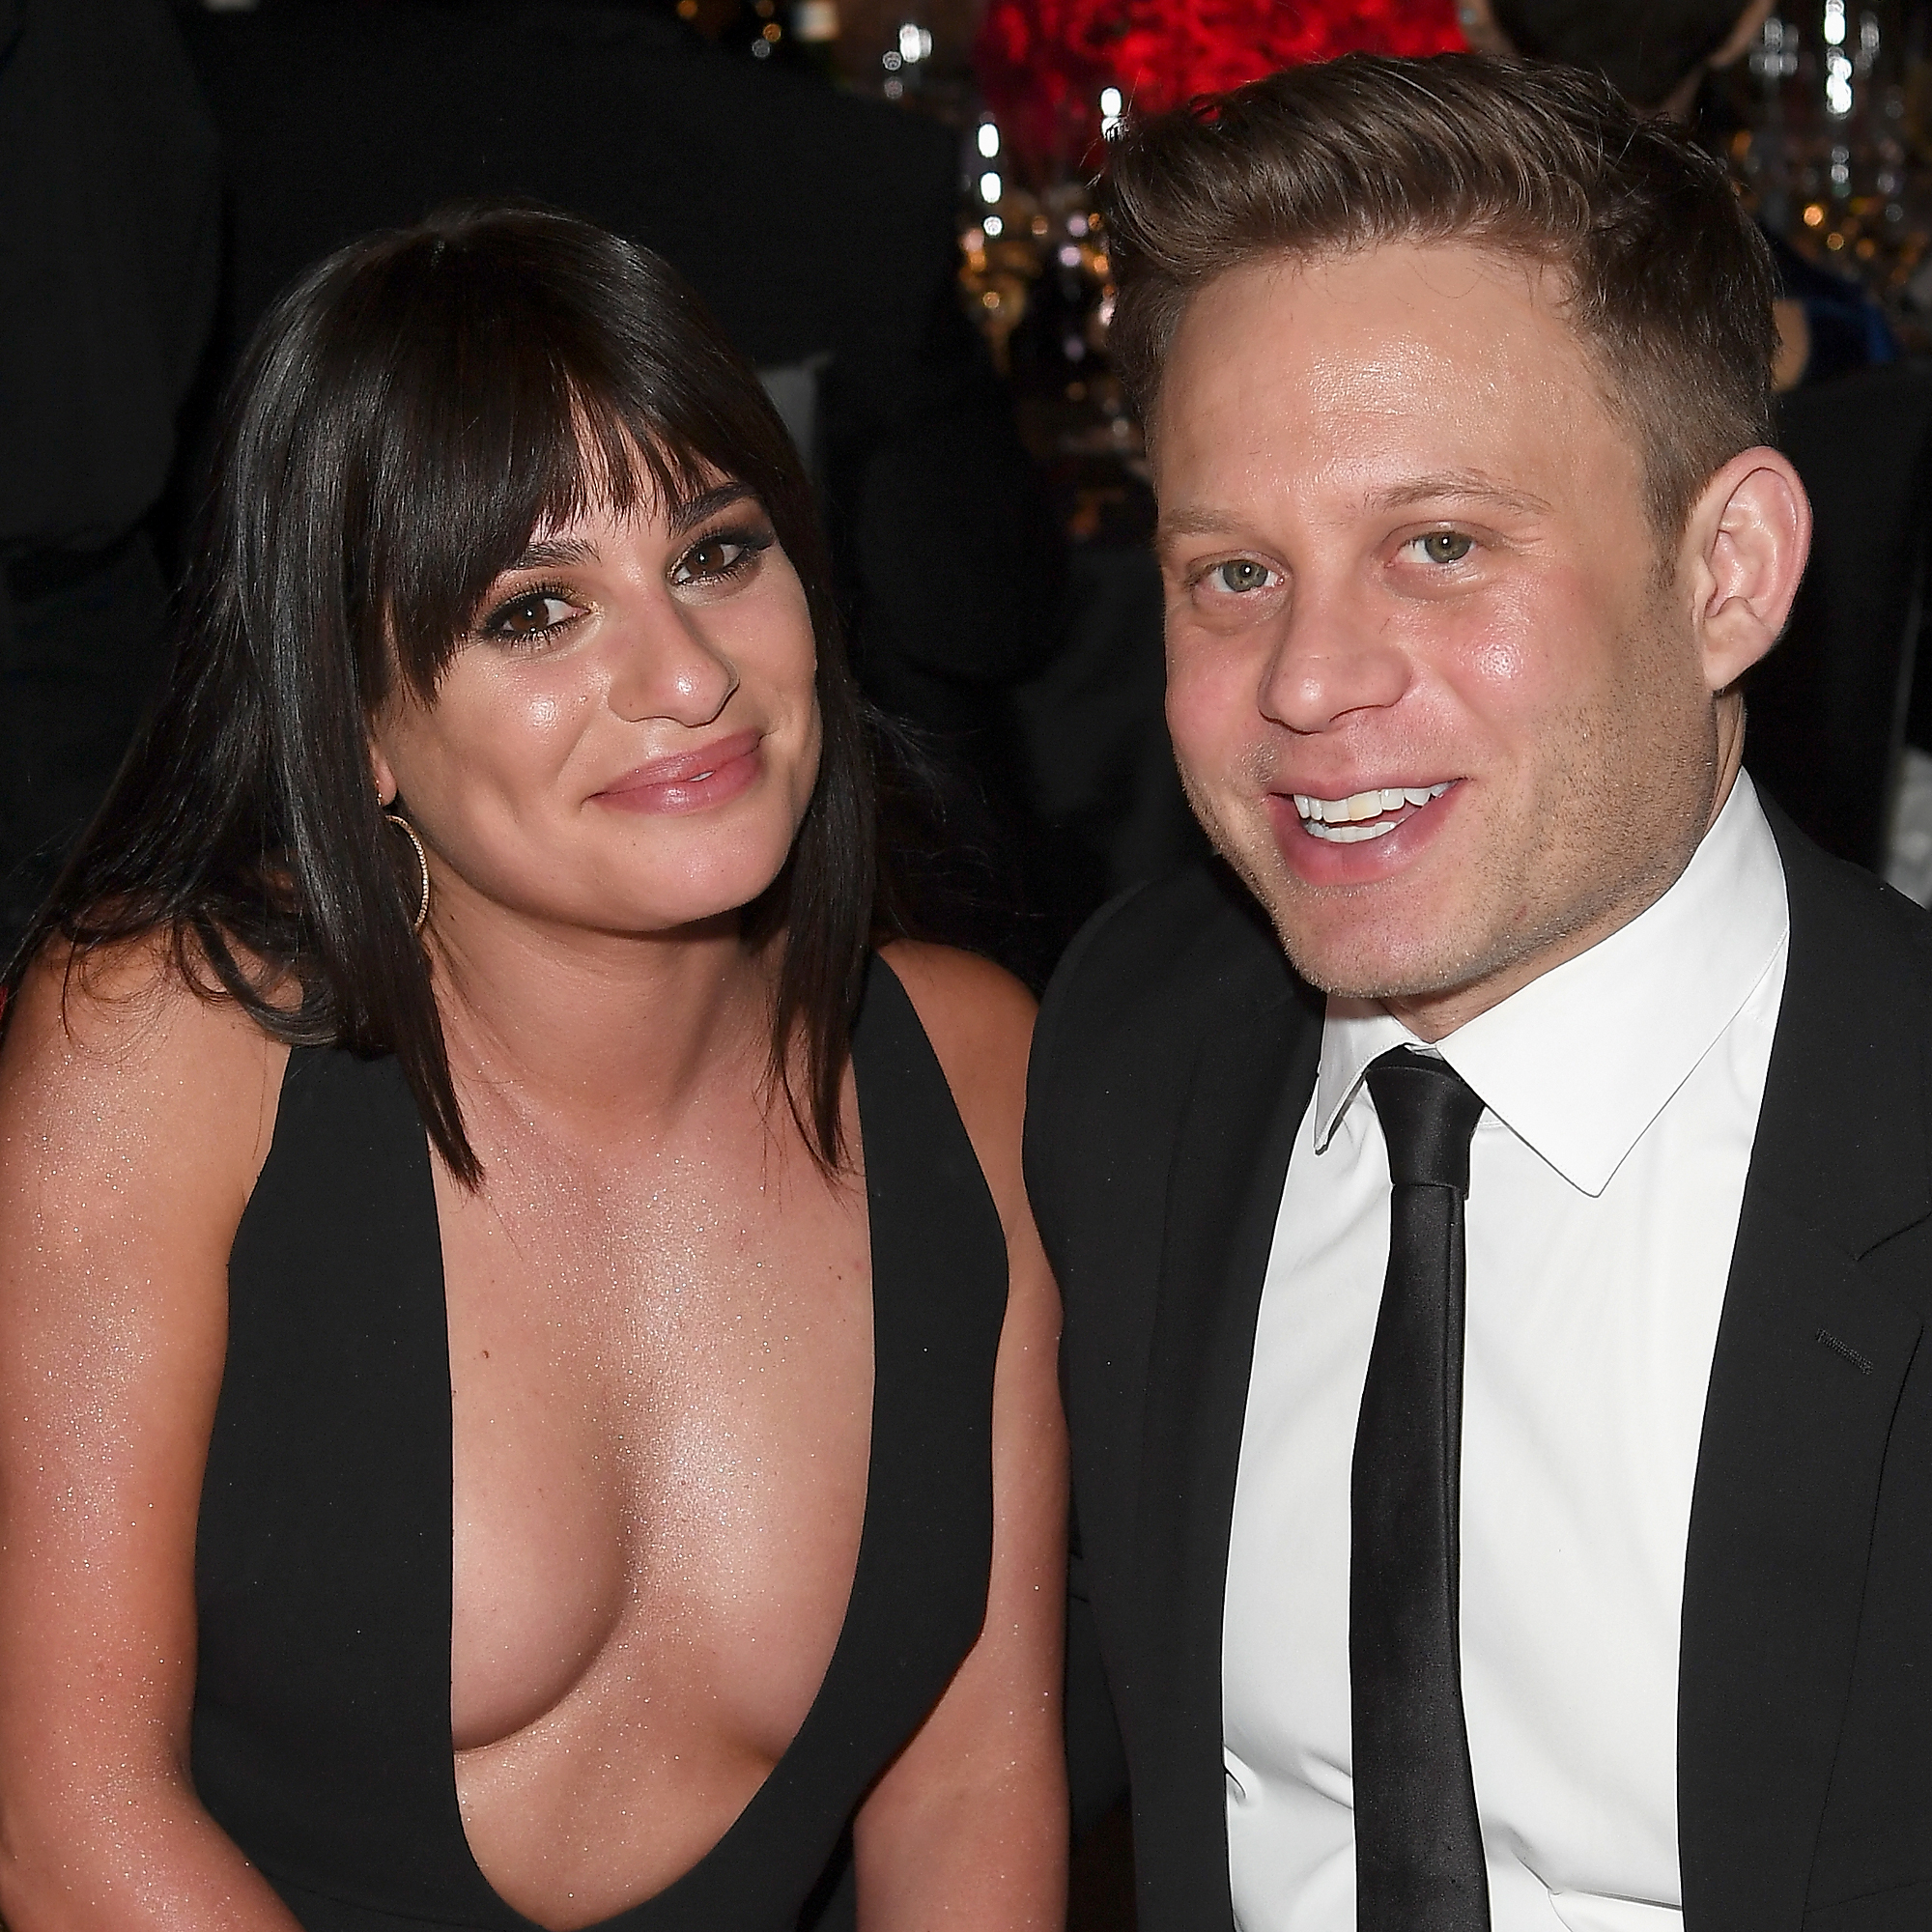 Lea Michele and Fiance Zandy Reich Bridal Shower - LOS ANGELES, CA – MARCH 04: Lea Michele (L) and Zandy Reich attends Elton John AIDS Foundation 26th Annual Academy Awards Viewing Party at The City of West Hollywood Park on March 4, 2018 in Los Angeles, California. (Photo by Venturelli/Getty Images for Bulgari)